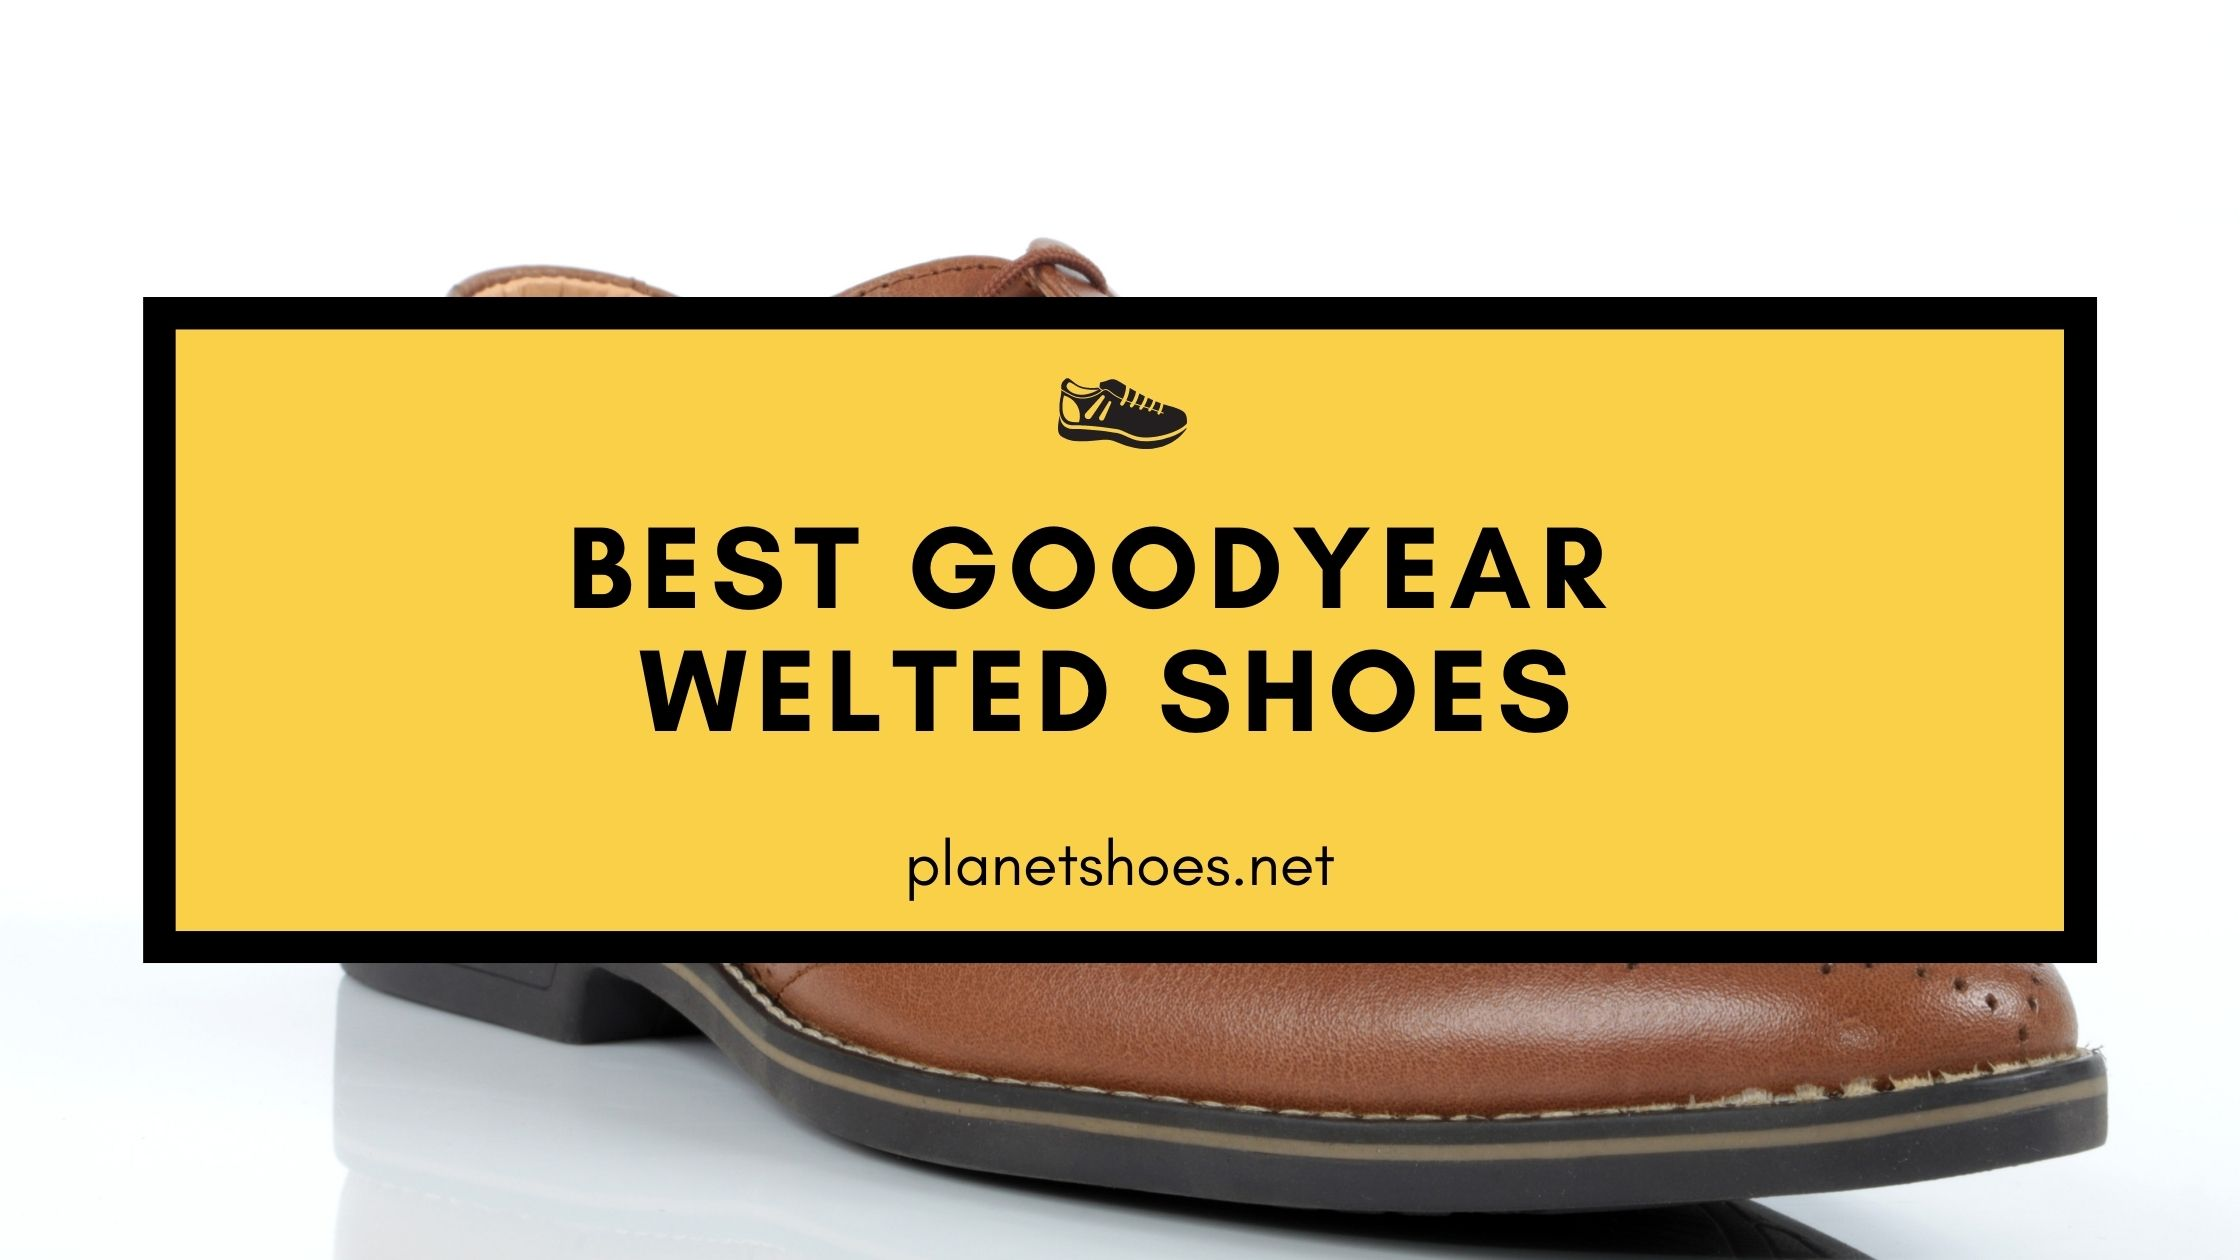 PS-best-goodyear-welted-shoes